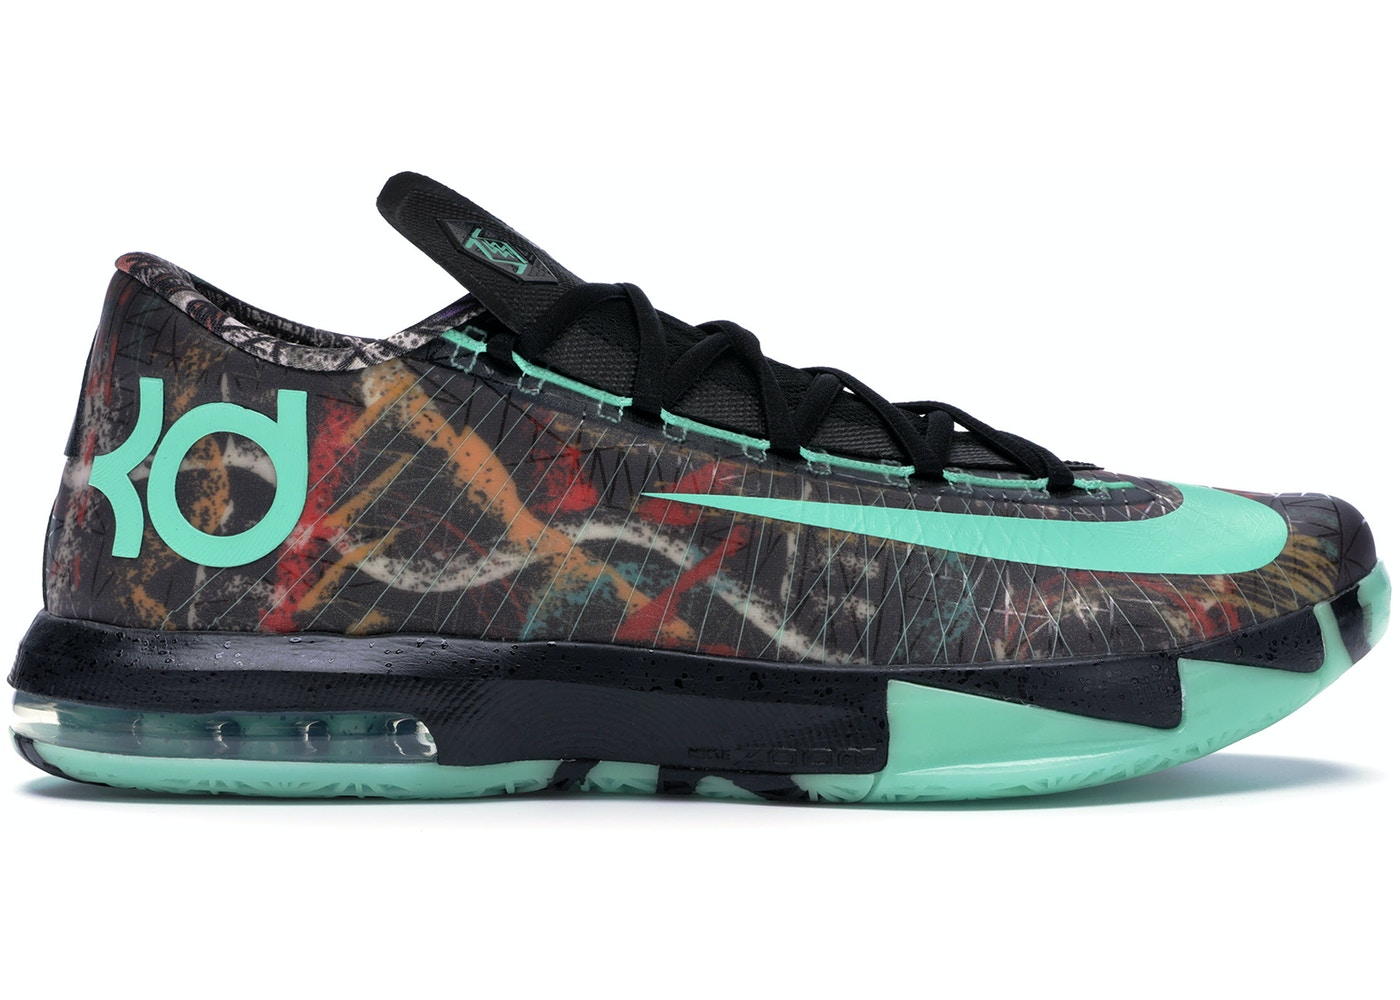 premium selection 4c85e ac976 Buy Nike KD Shoes   Deadstock Sneakers